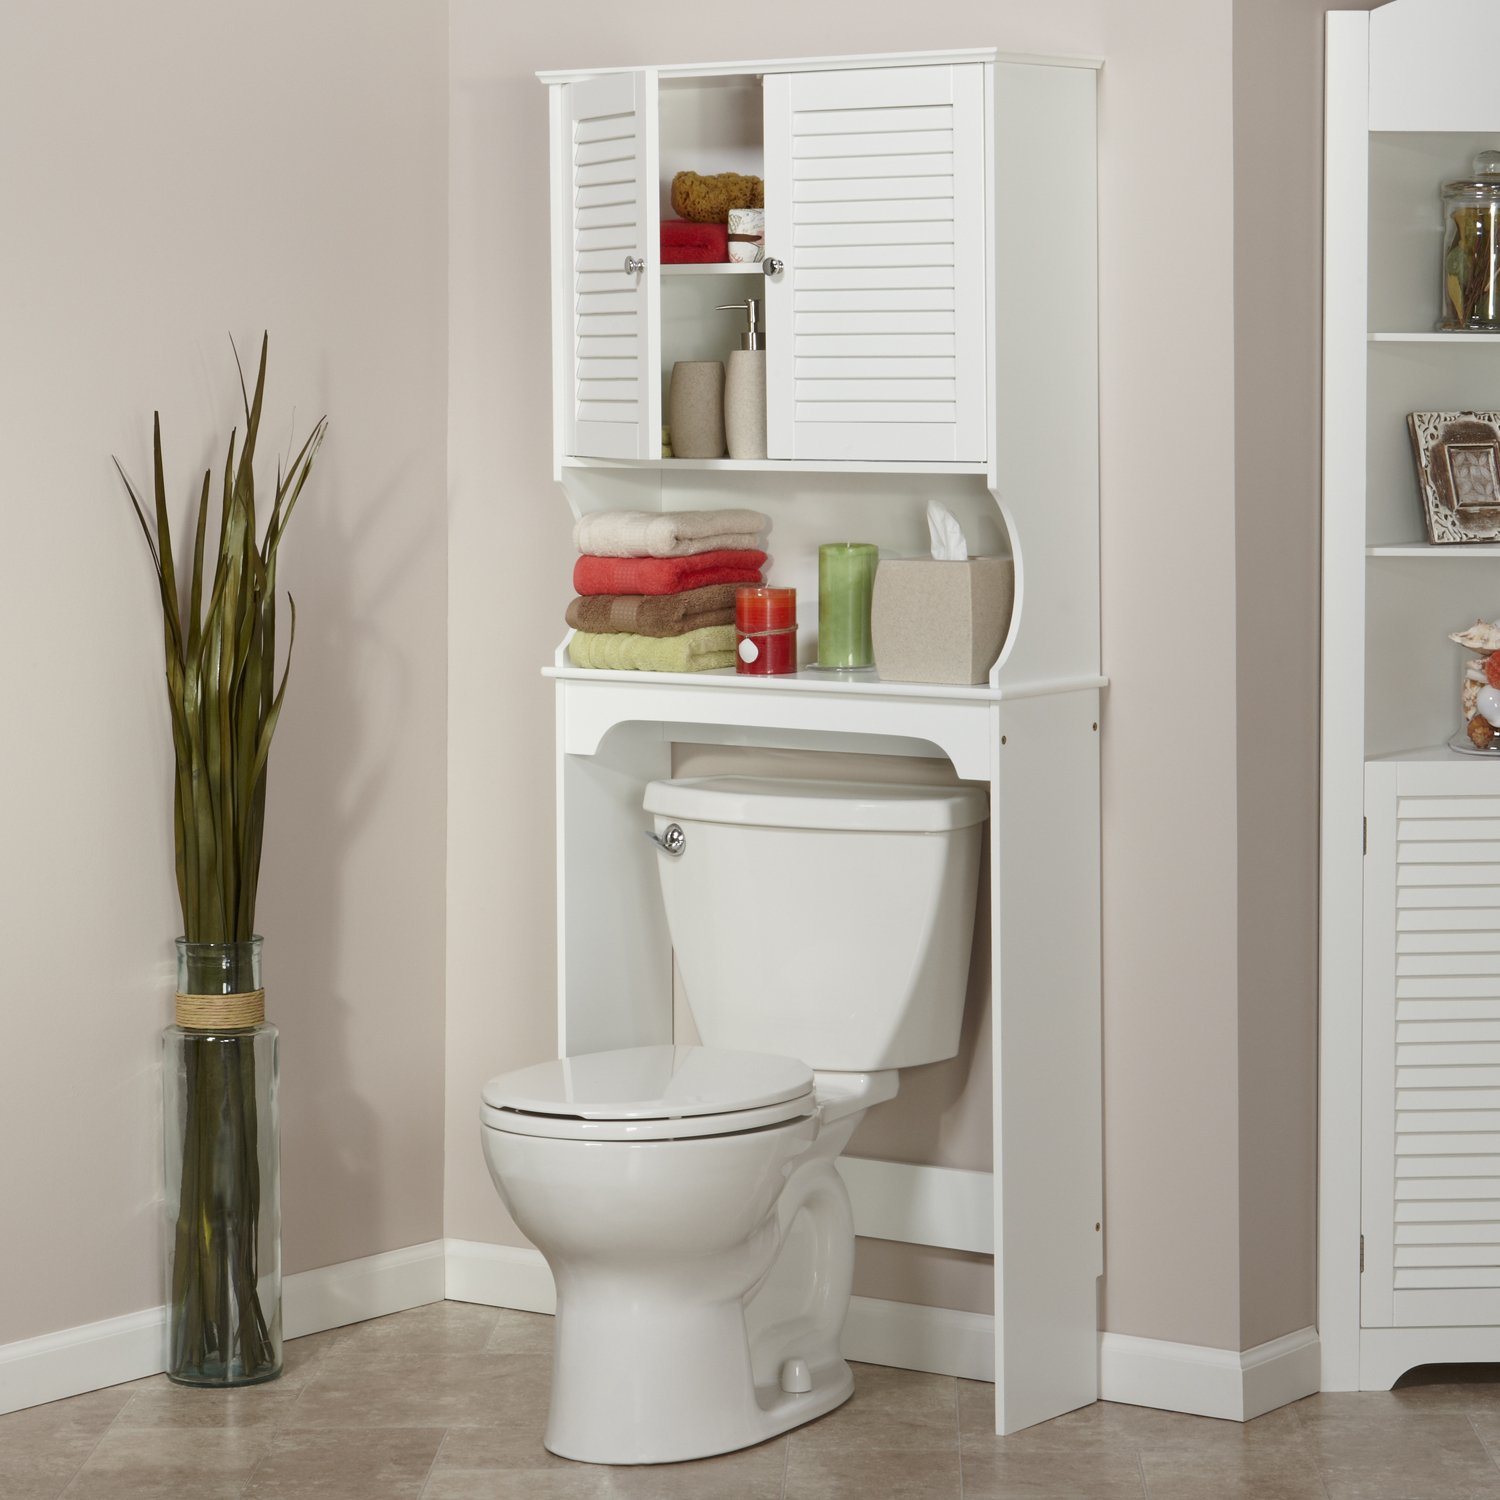 Behind The Toilet Cabinet Home Decoration Interior Home Decorating